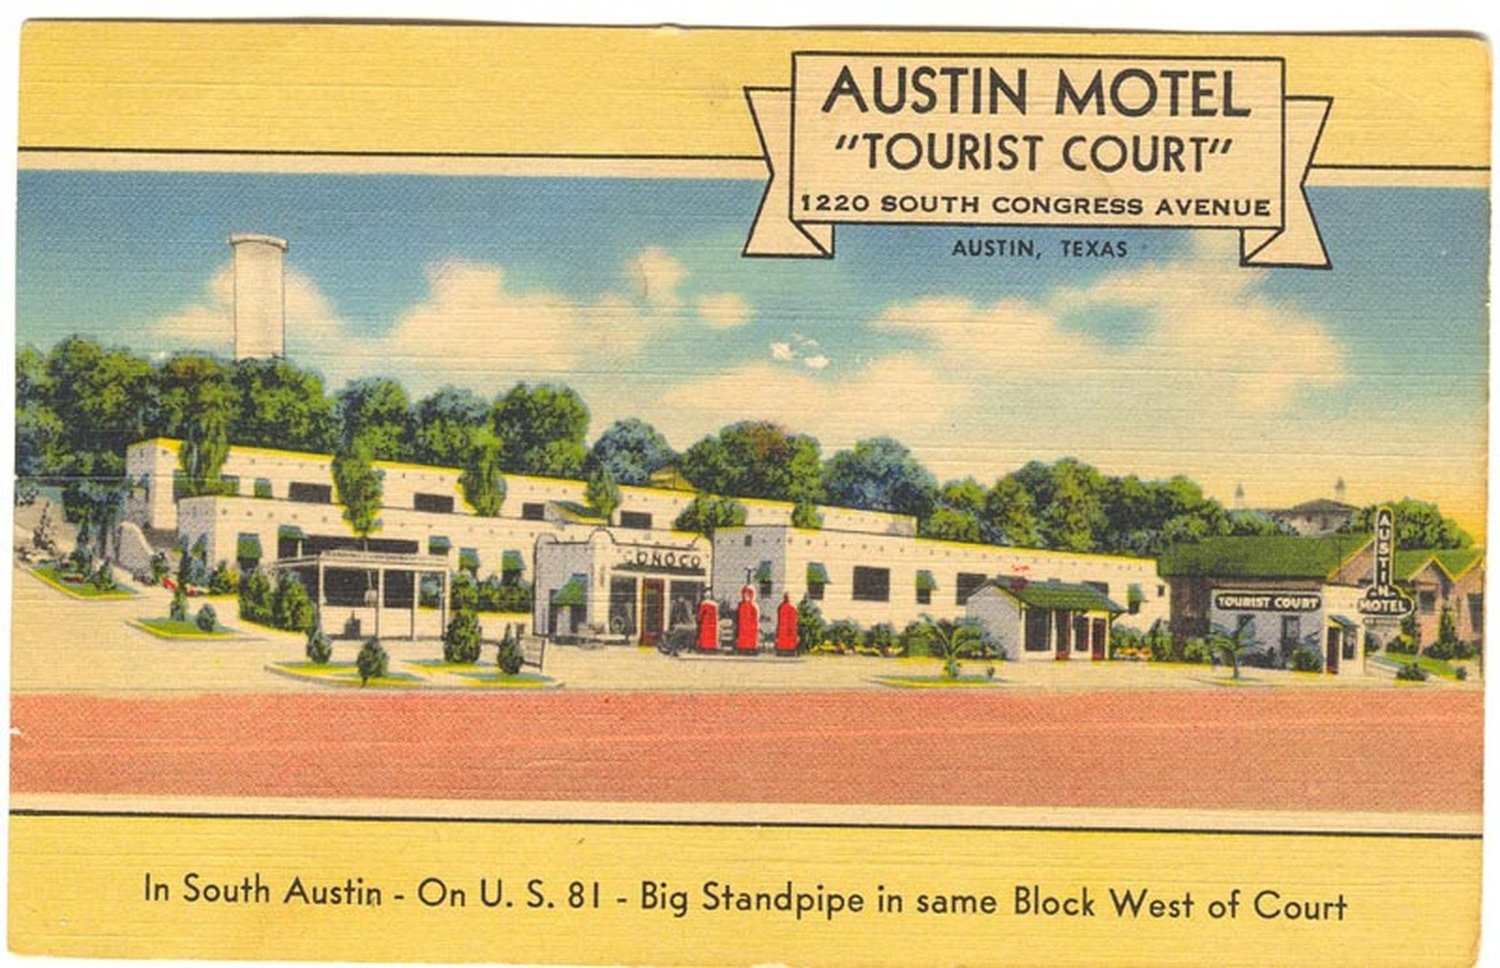 A vintage tourism poster for the Austin Motel